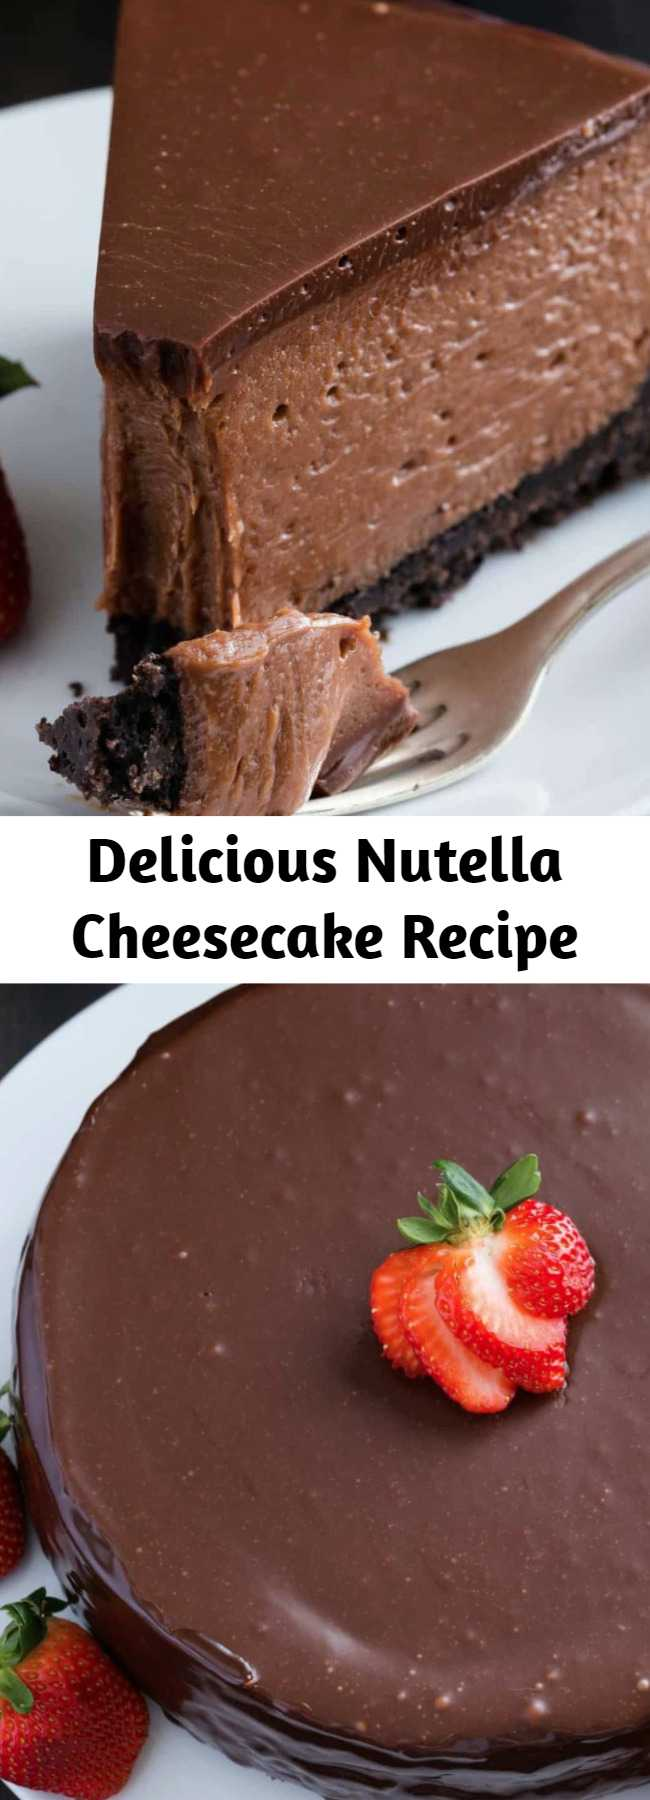 Delicious Nutella Cheesecake Recipe - This Nutella Cheesecake tastes like it came from a gourmet bakery. It's decadent, creamy, and full of Nutella flavor. #nutella #cheesecake #oreocrust